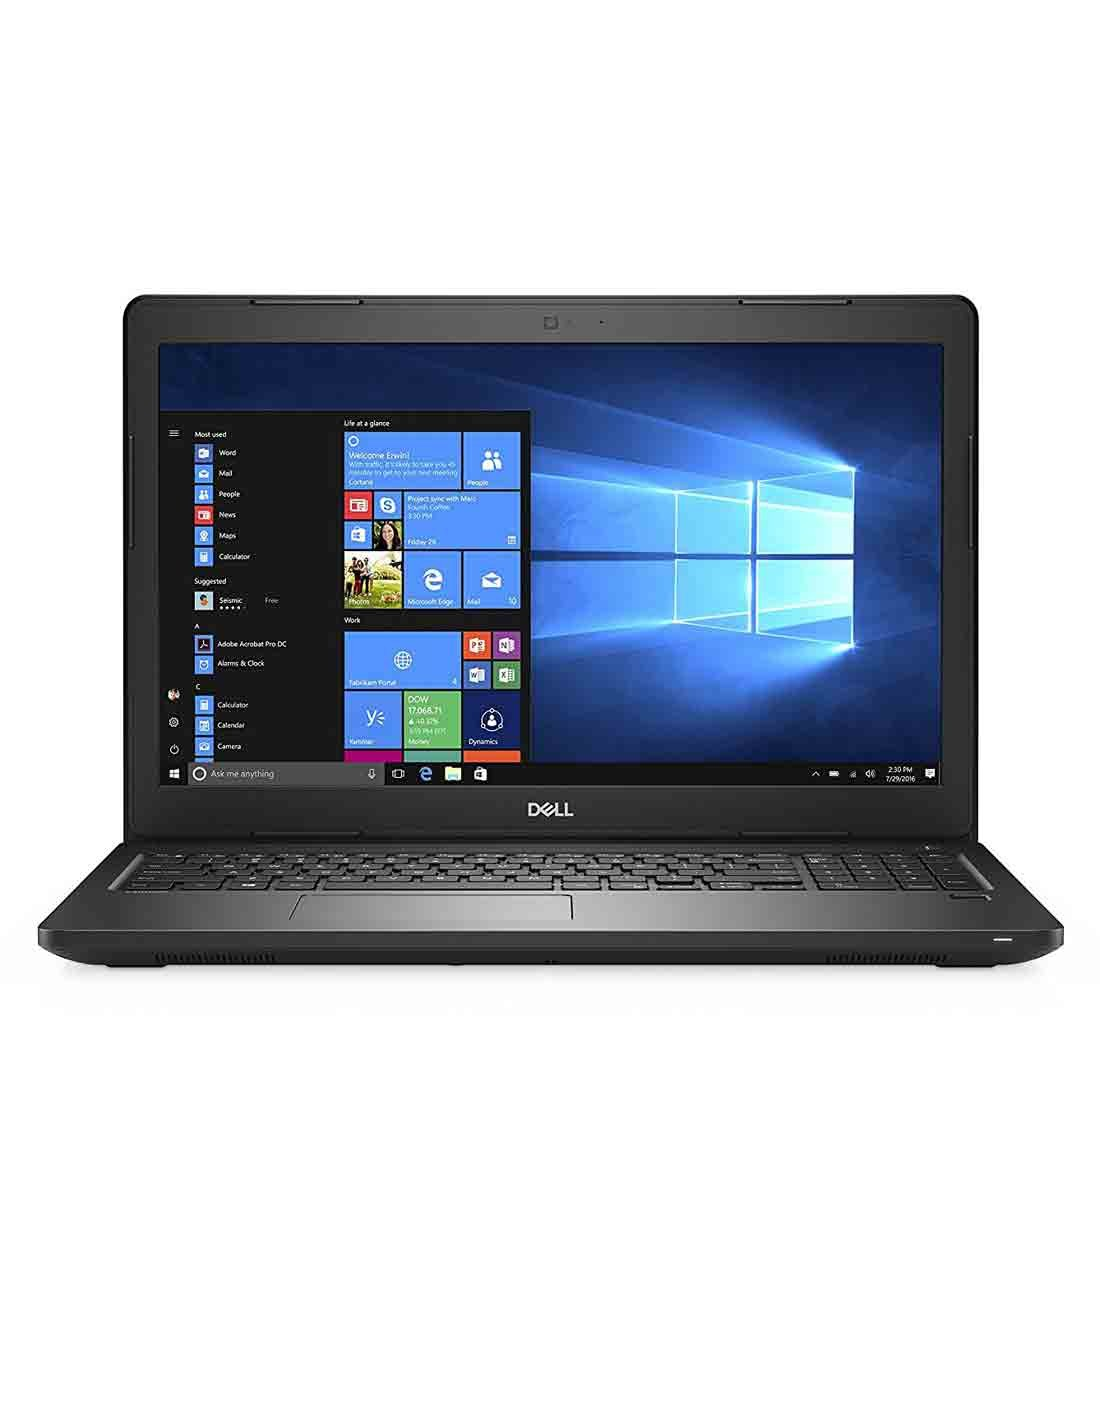 Dell Latitude 3580 Laptop images and photos in Dubai computer store